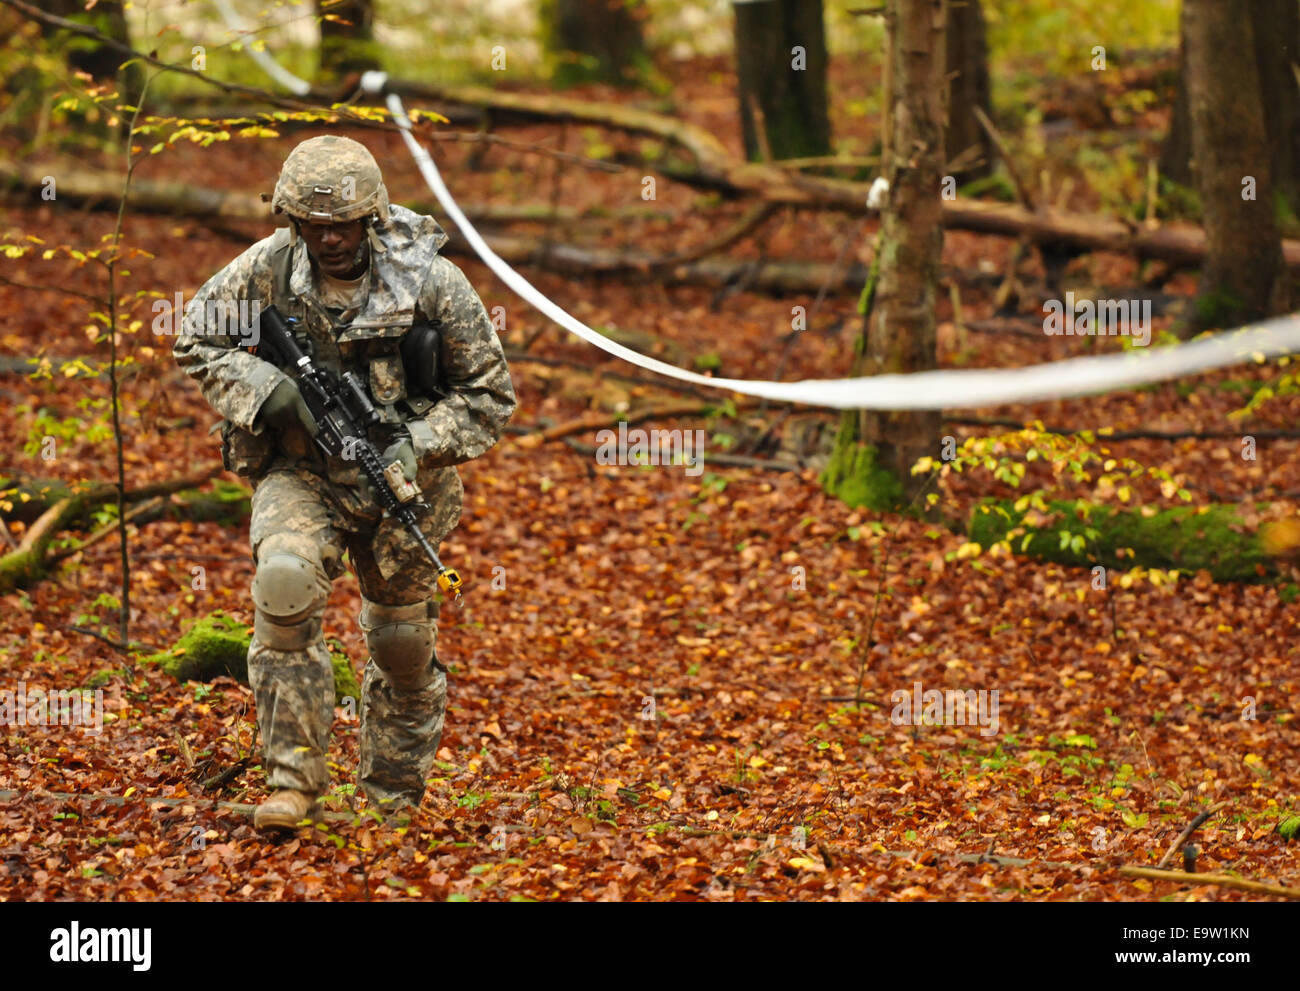 A U.S. Soldier assigned to the 2nd Cavalry Regiment competes with Soldiers from other units in a land navigation - Stock Image